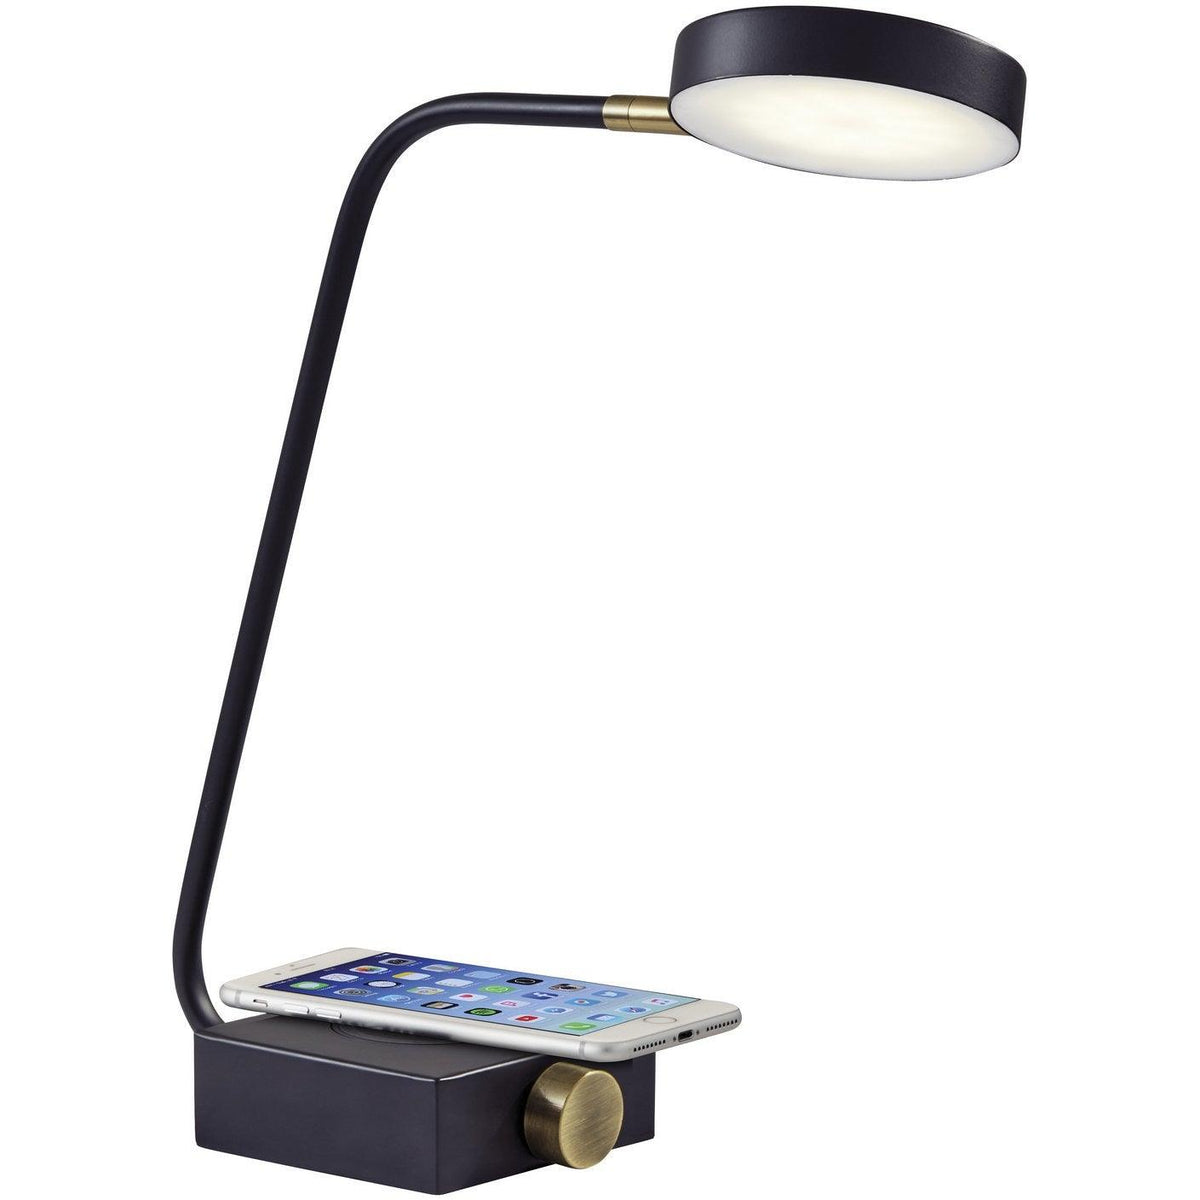 Adesso Home - 3618-01 - LED Table Lamp - Conrad - Matte Black w. Antique Brass Accents